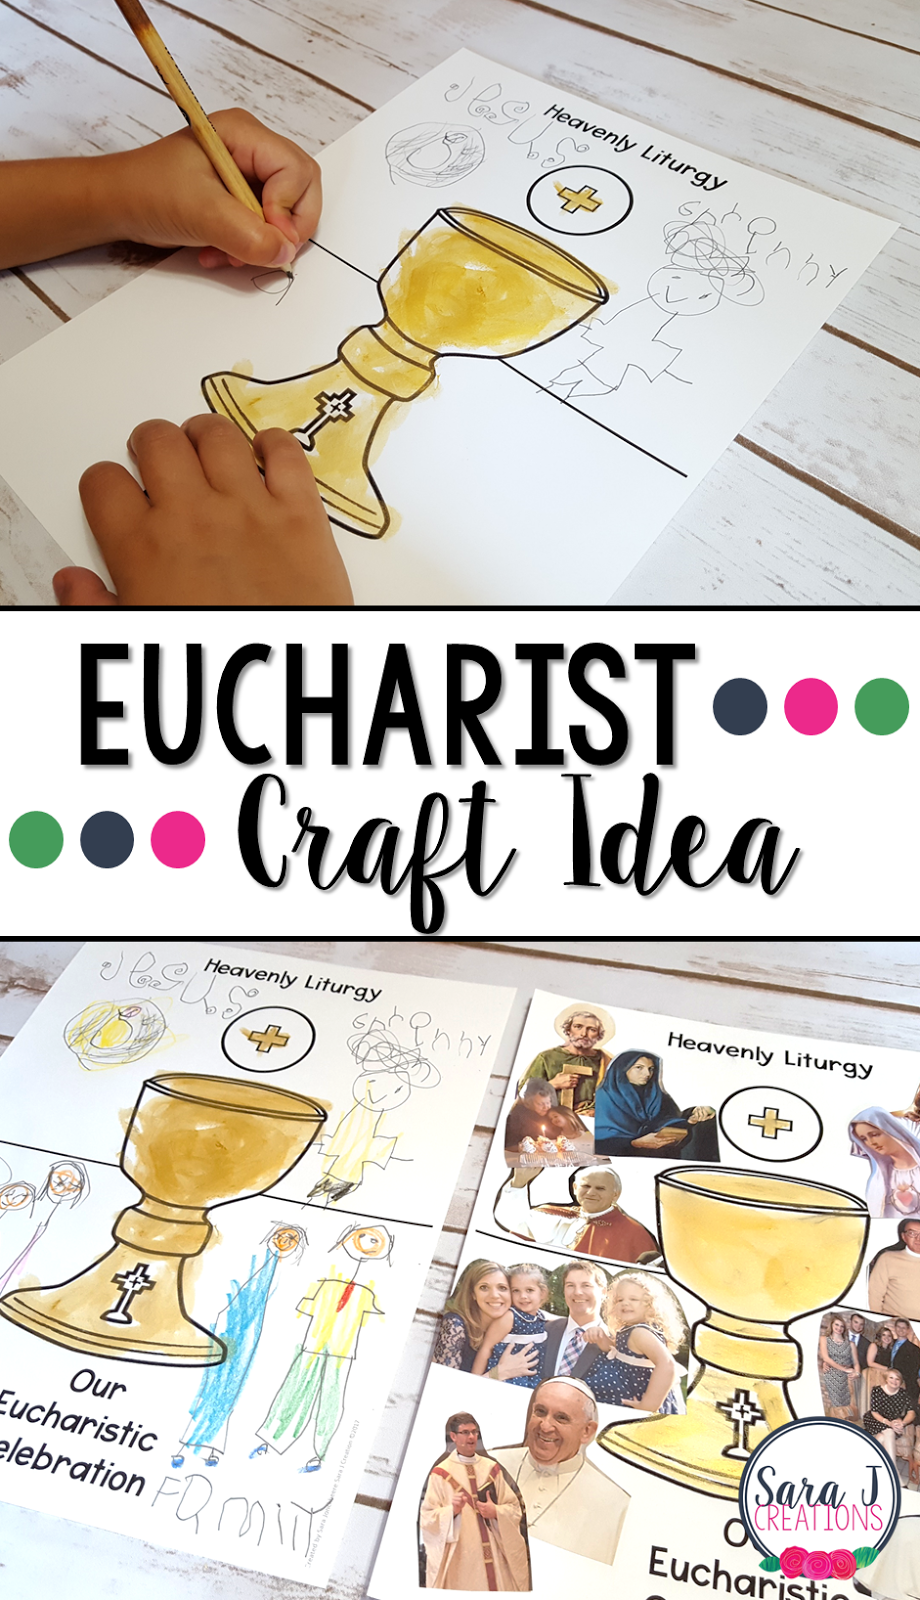 Eucharist craft idea that is perfect for teaching about Holy Communion or the Seven Sacraments. This craft connects our liturgy on earth to the heavenly liturgy.